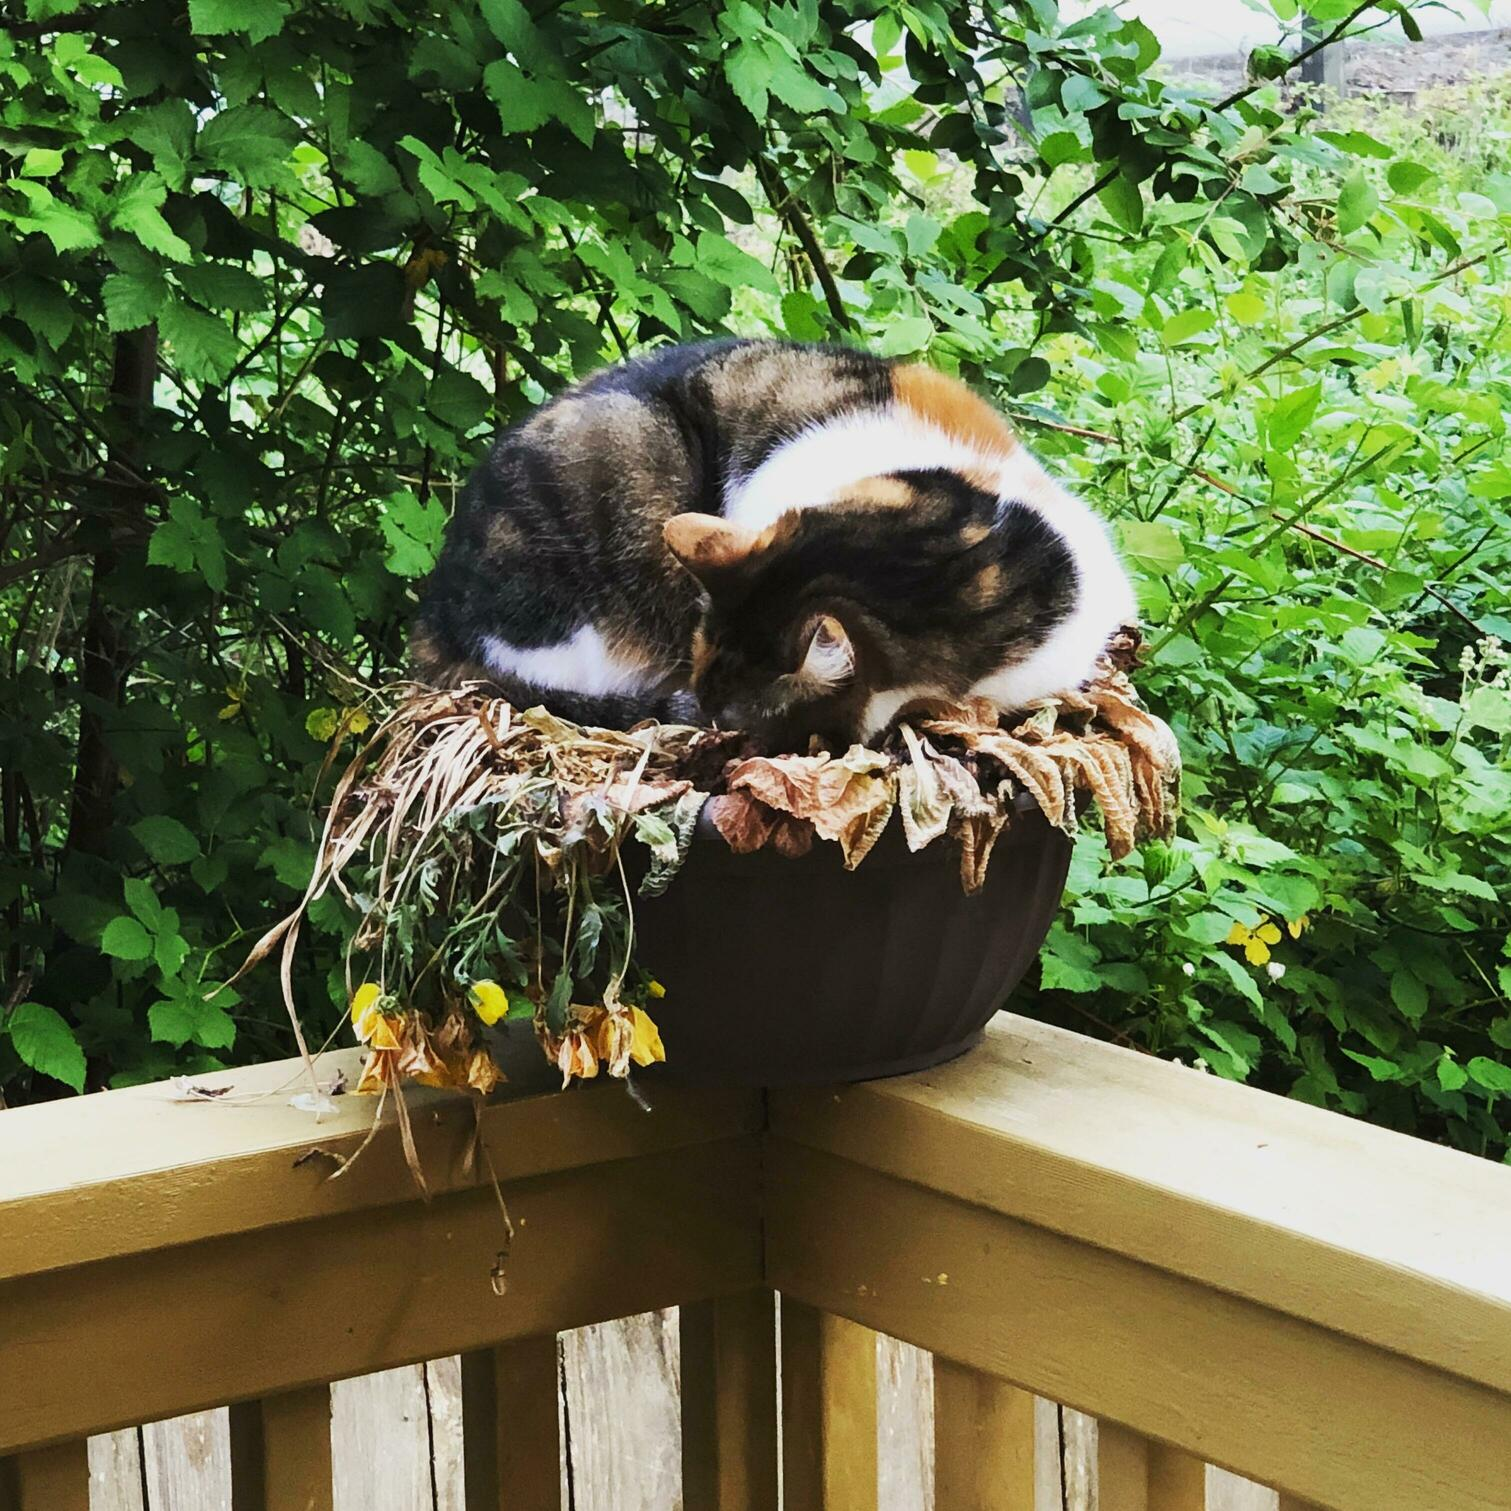 My cat crop is coming in nicely this year